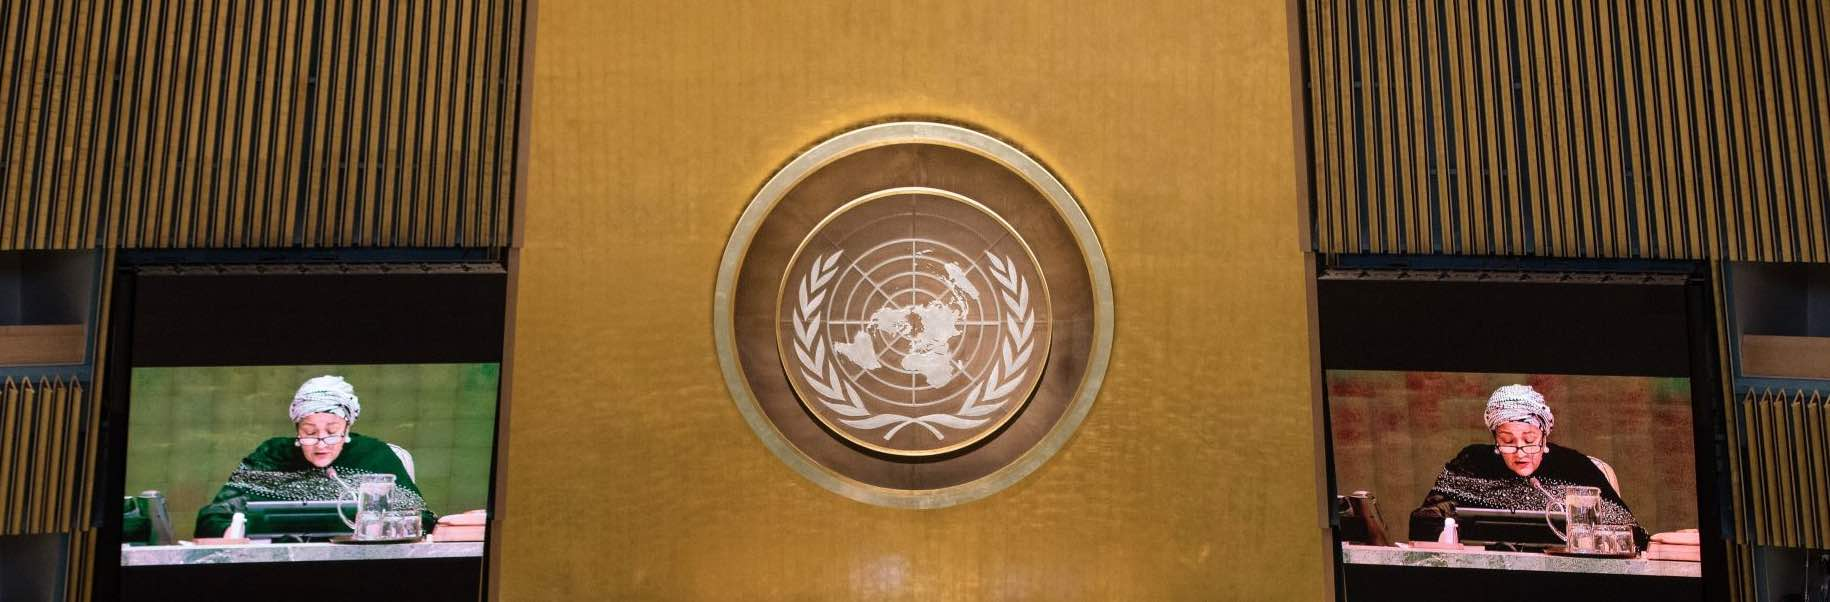 United Nations Chamber in session